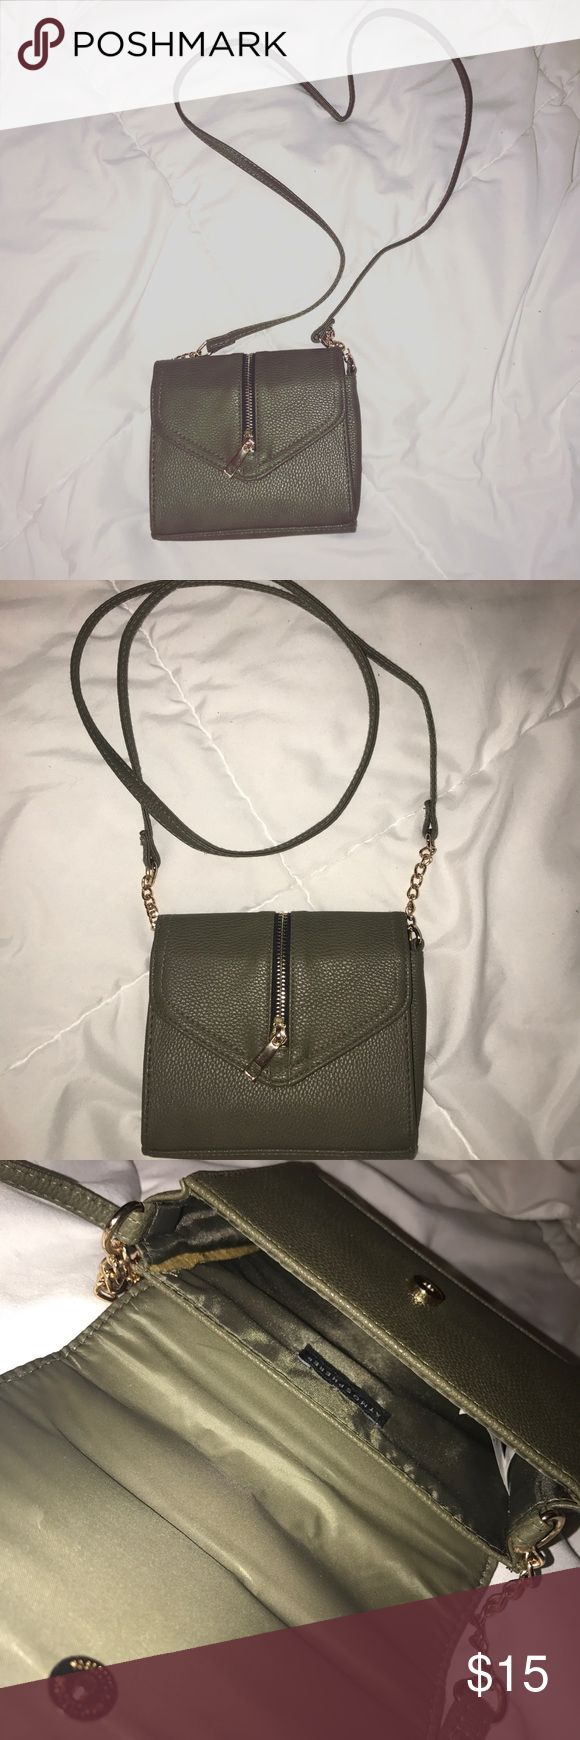 """🥀{Atmosphere} Navy green crossbody 🥀 NWOT Very cute with dainty chain details on the strap, and zipper detail on the front of the bag. Would fit money, phone, lipgloss. All the essentials for a quick errand or a night out. ▪️Atmosphere ▪️6""""W x 6""""H x 1""""D ▪️Perfect for a night on the town   🥀Add any item(s) into a bundle for a private offer🥀 Atmosphere Bags Crossbody Bags"""